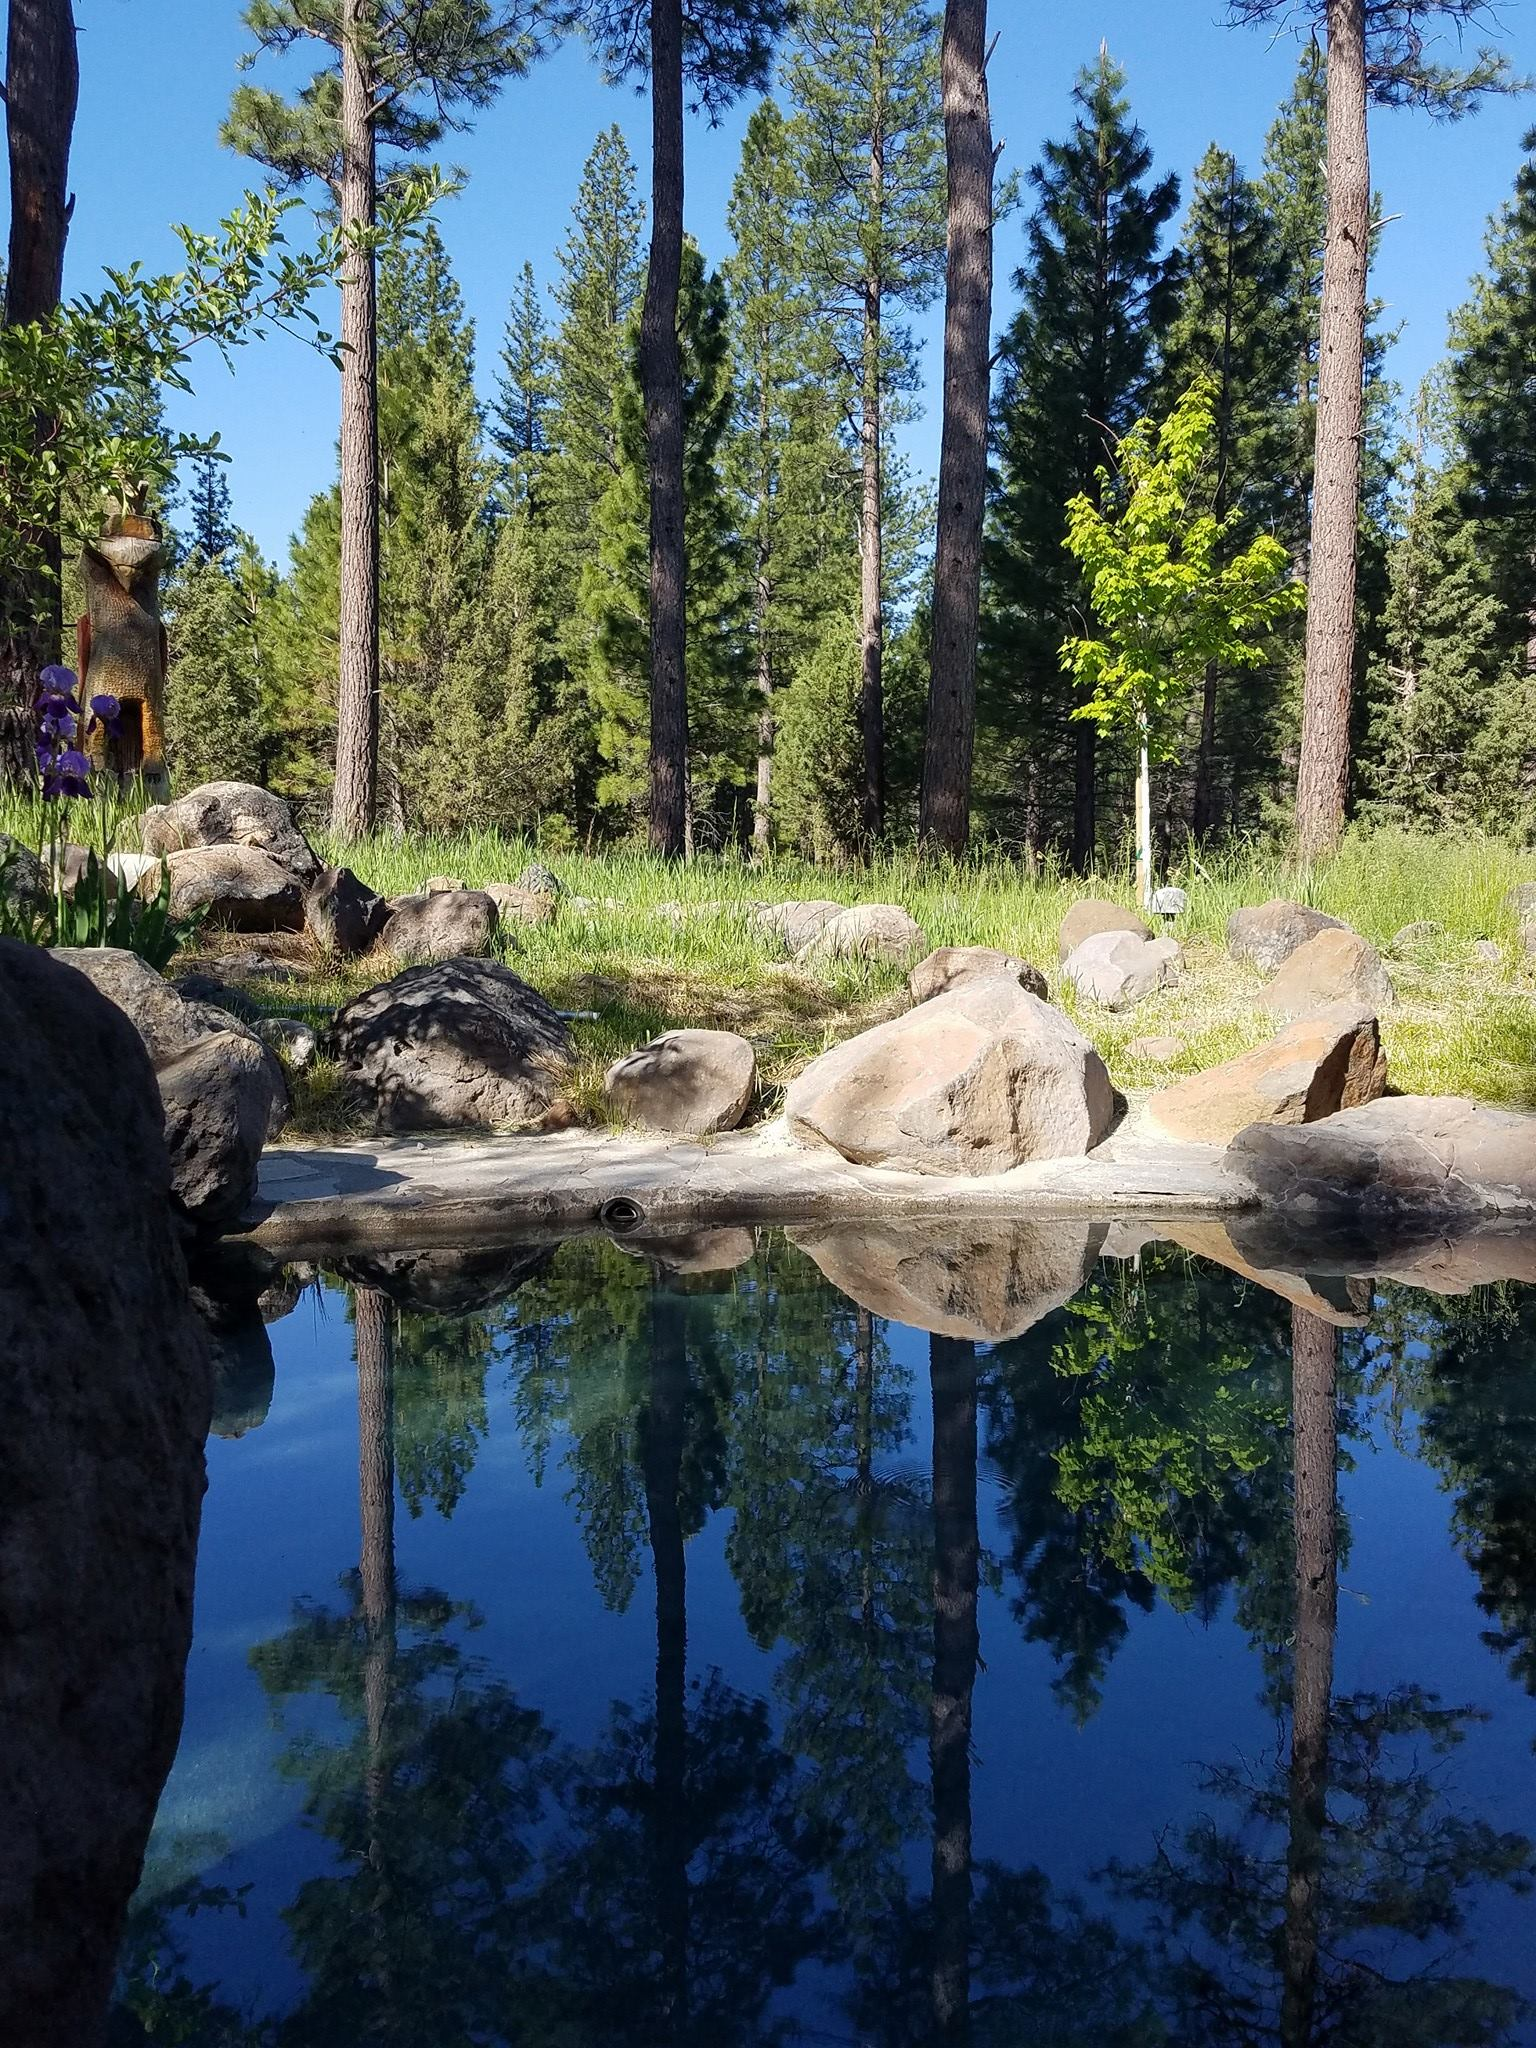 Springtime Yoga and Meditation Retreat at Sierra Hot Springs with Christie Pitko